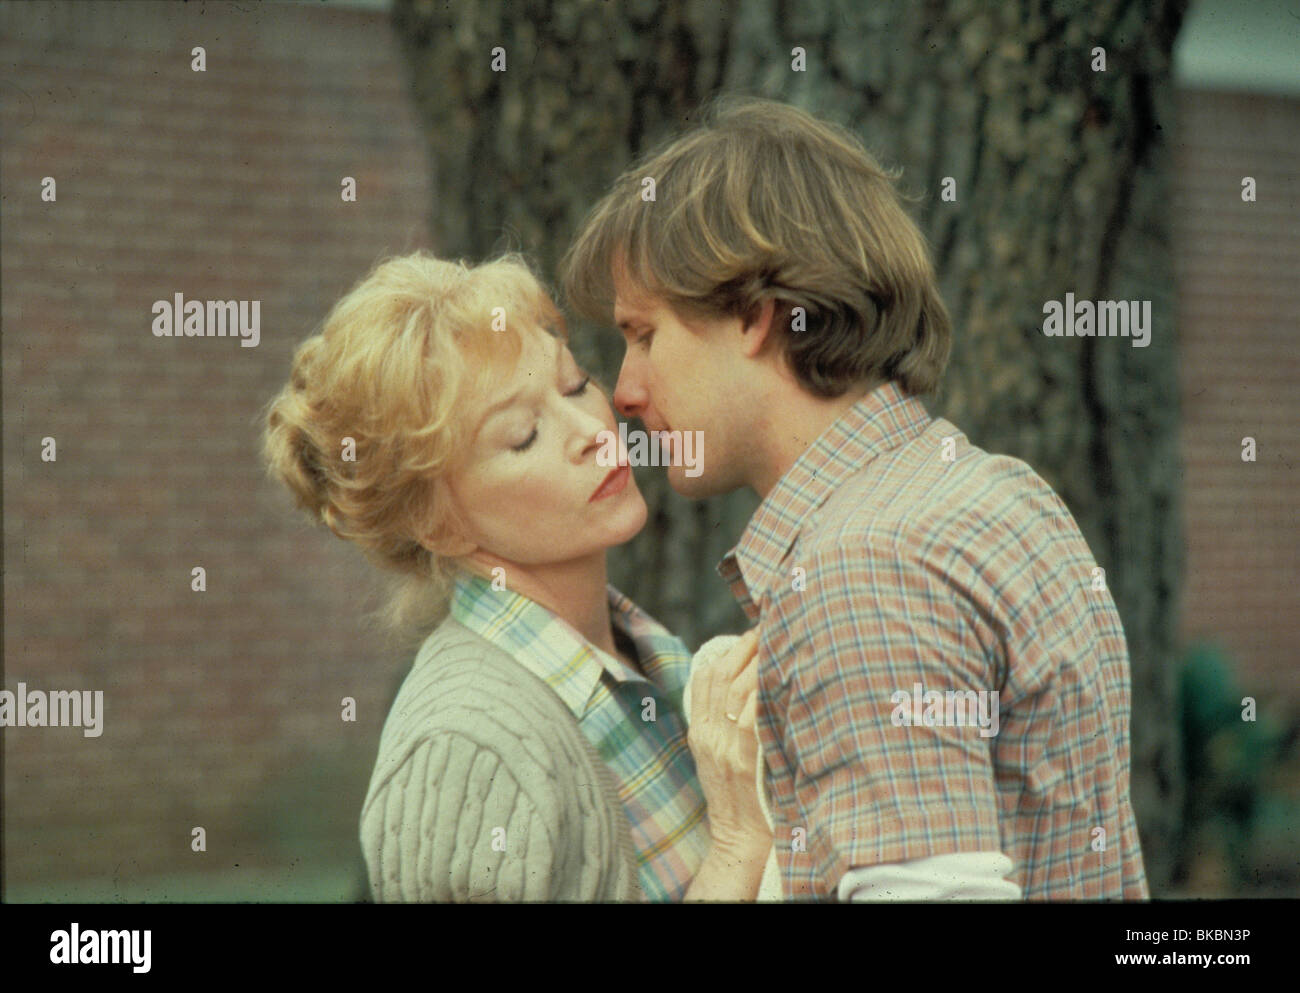 Jeff daniels terms of endearment